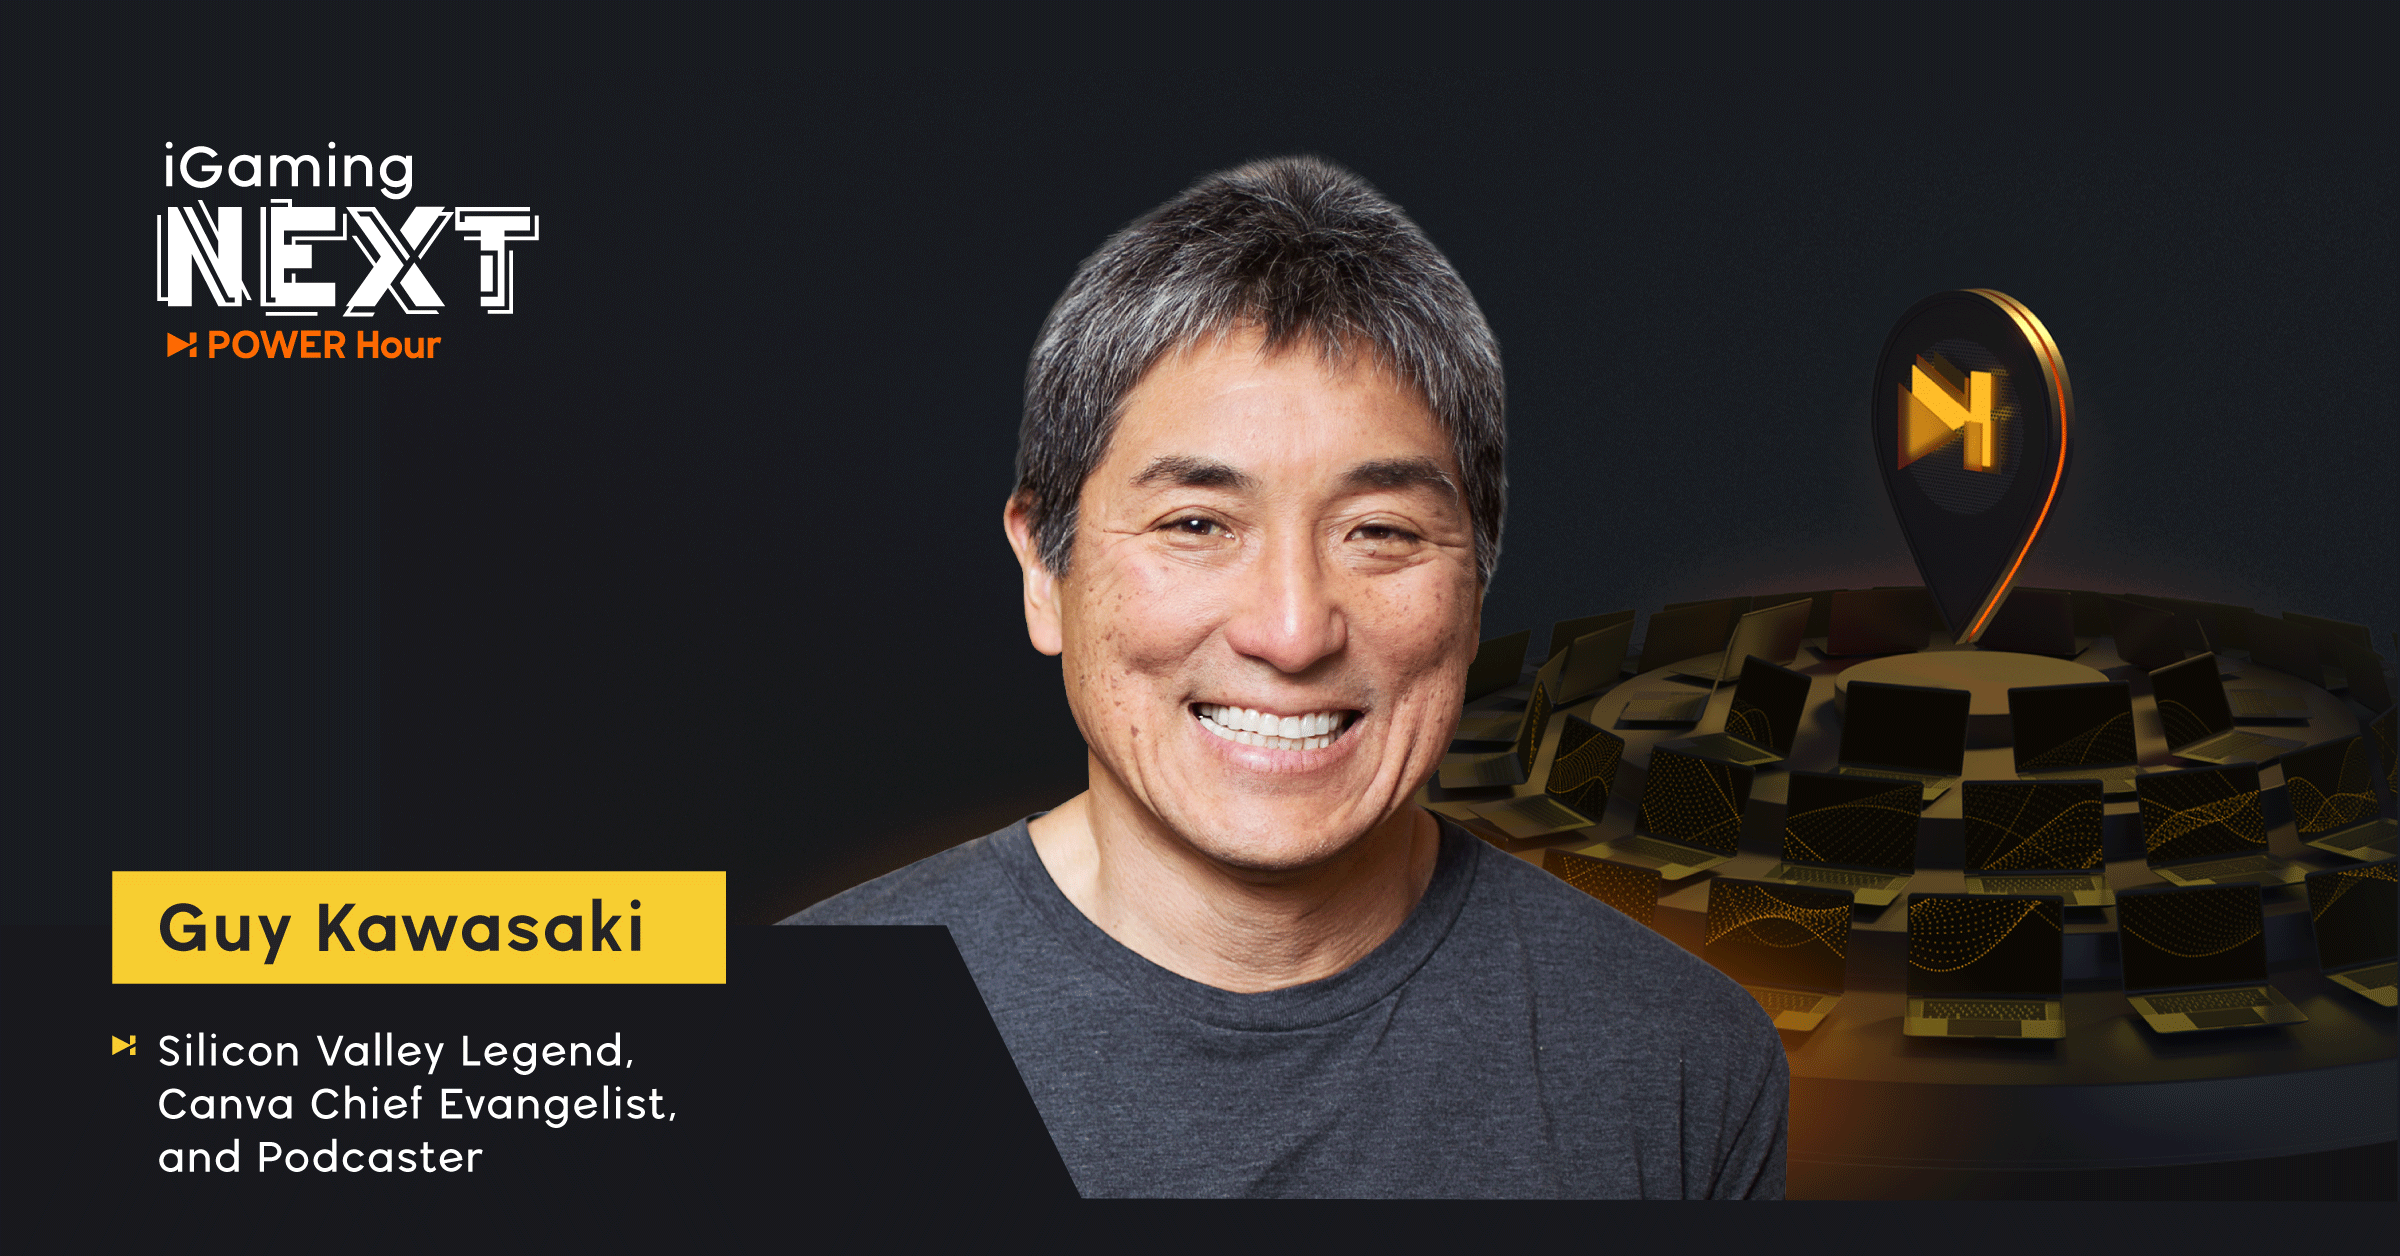 Exclusive Q&A with Guy Kawasaki picture